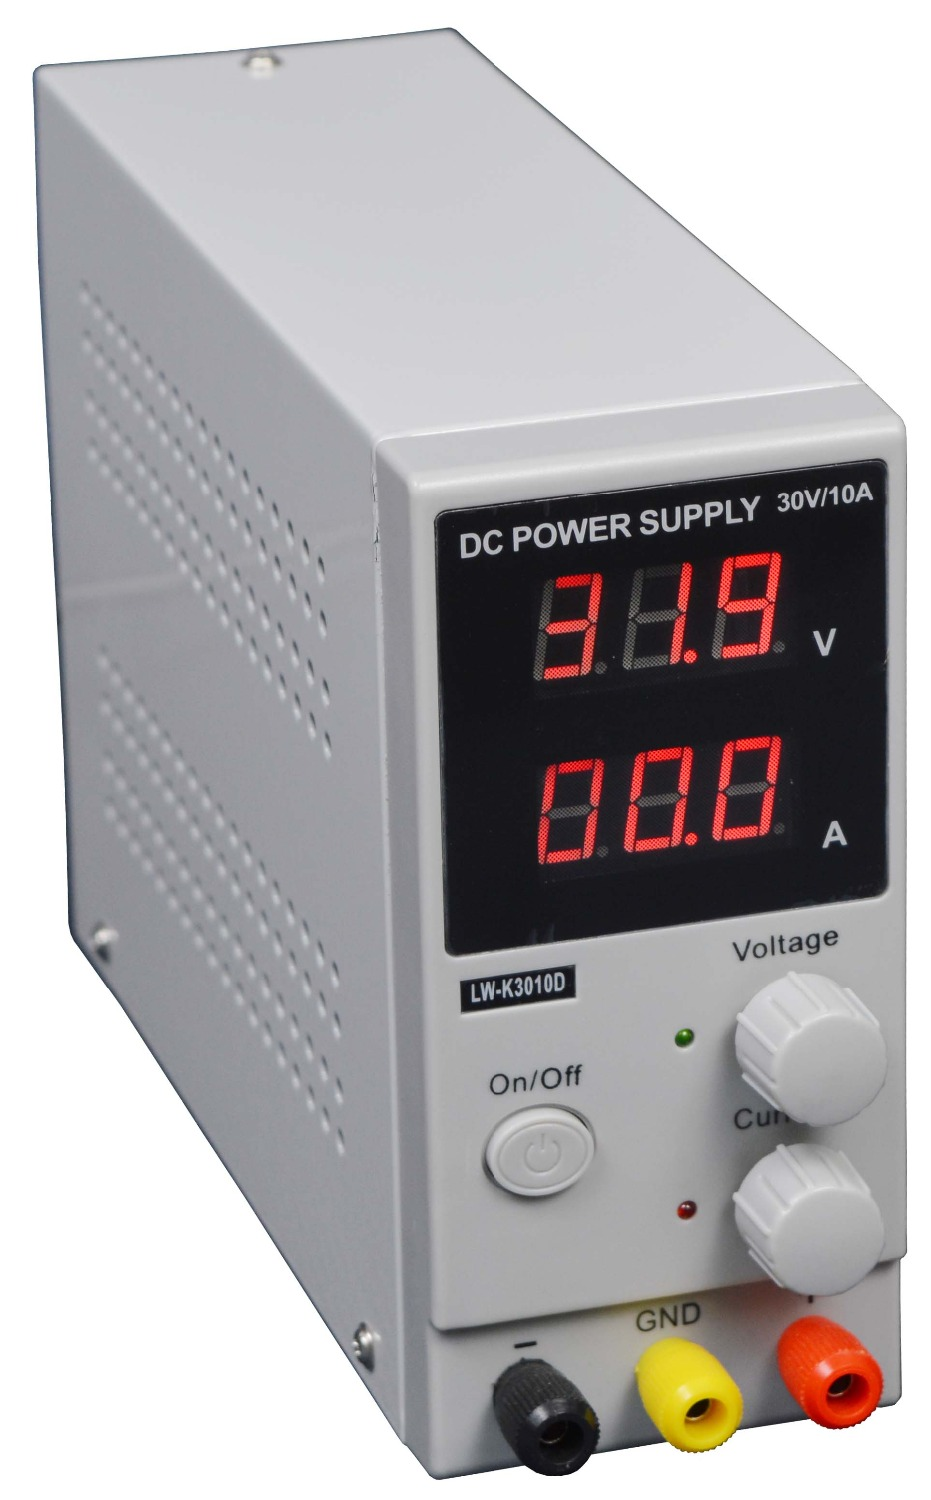 LW 3010D DC power 110V 220V Mini Adjustable Digital DC power supply 0~30V 0~10A Switching Power supply certification US EU Plug original lw mini adjustable digital dc power supply 0 30v 0 10a 110v 220v switching power supply 0 01v 0 01a 34 pcs dc jack